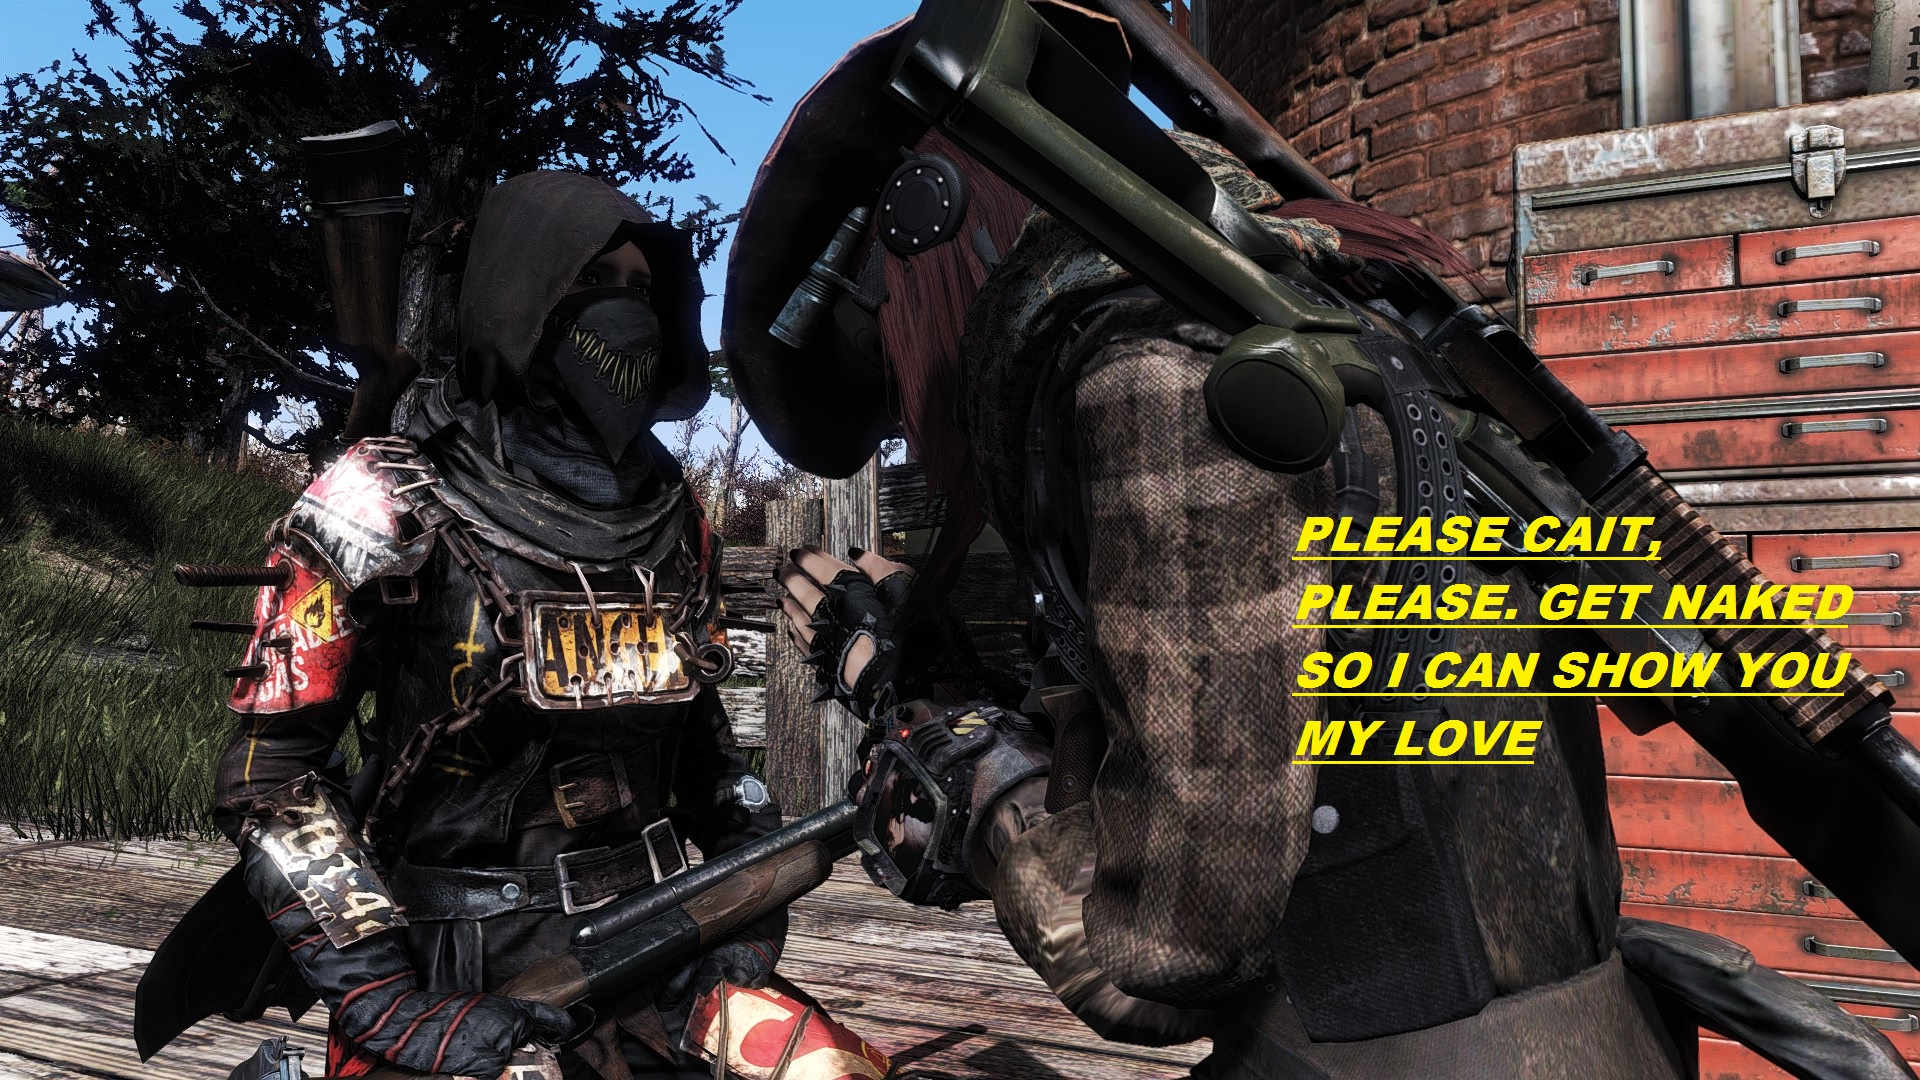 Nude Them As You Want at Fallout 4 Nexus - Mods and community